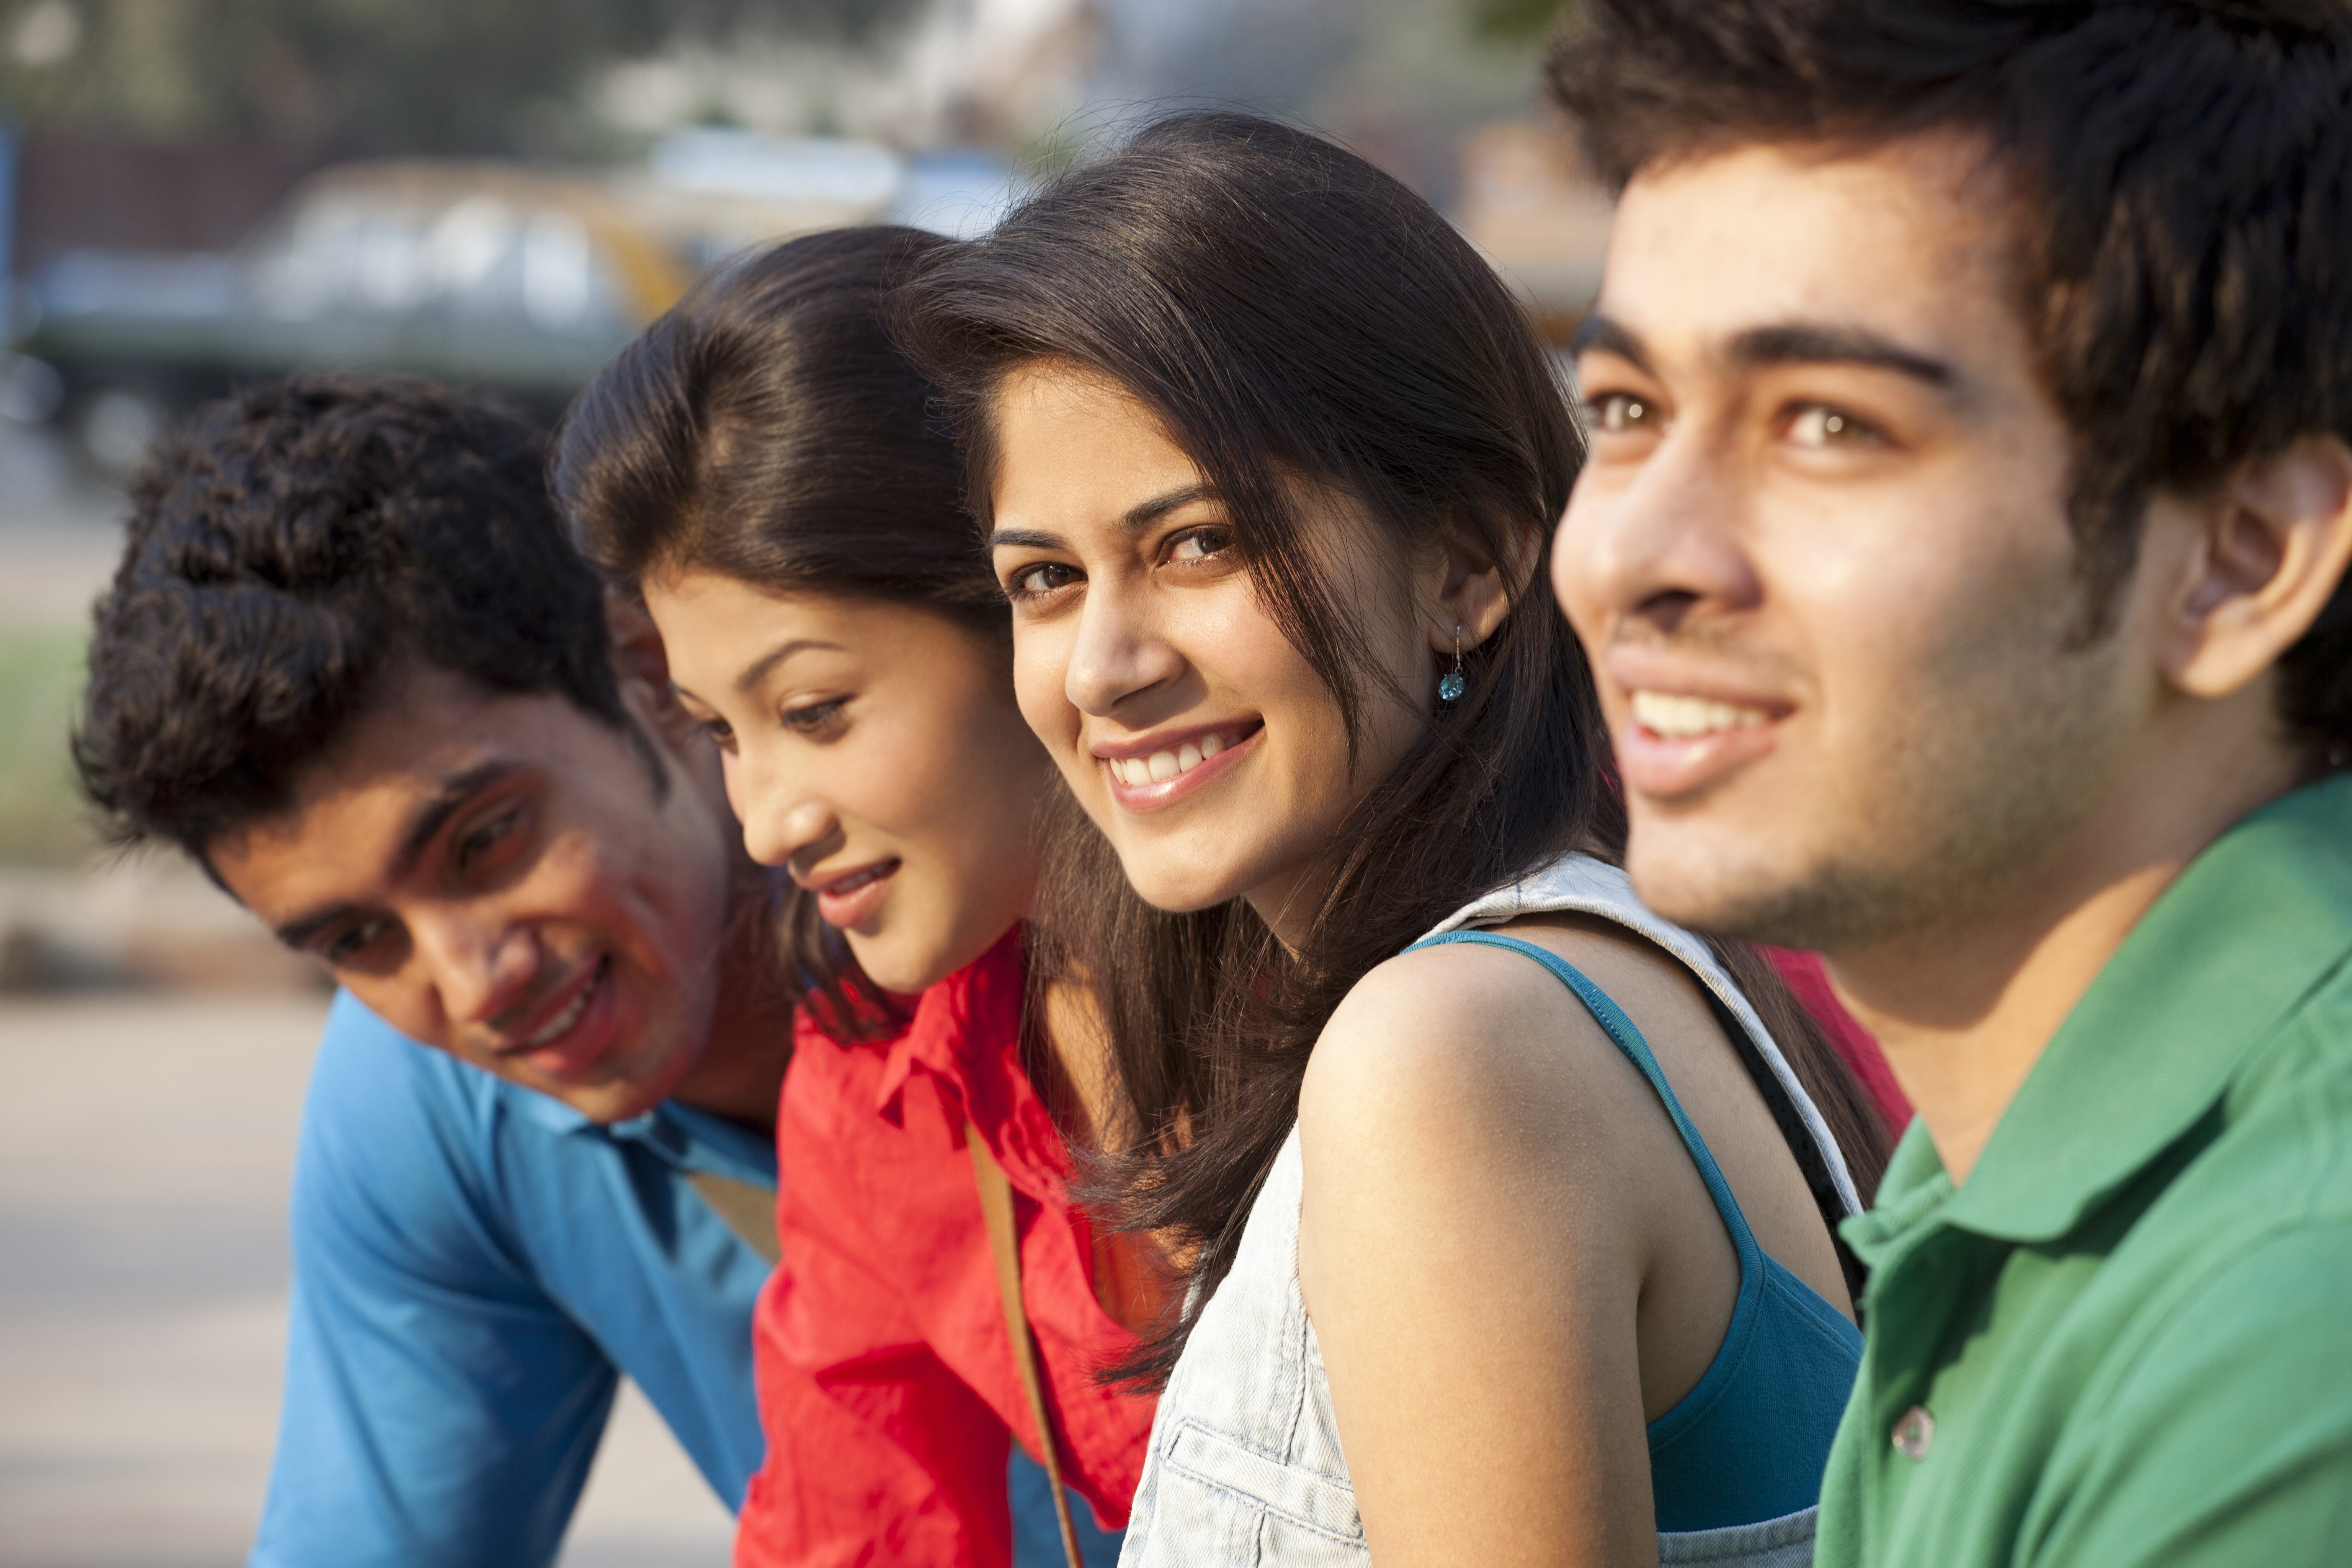 Four young smiling people